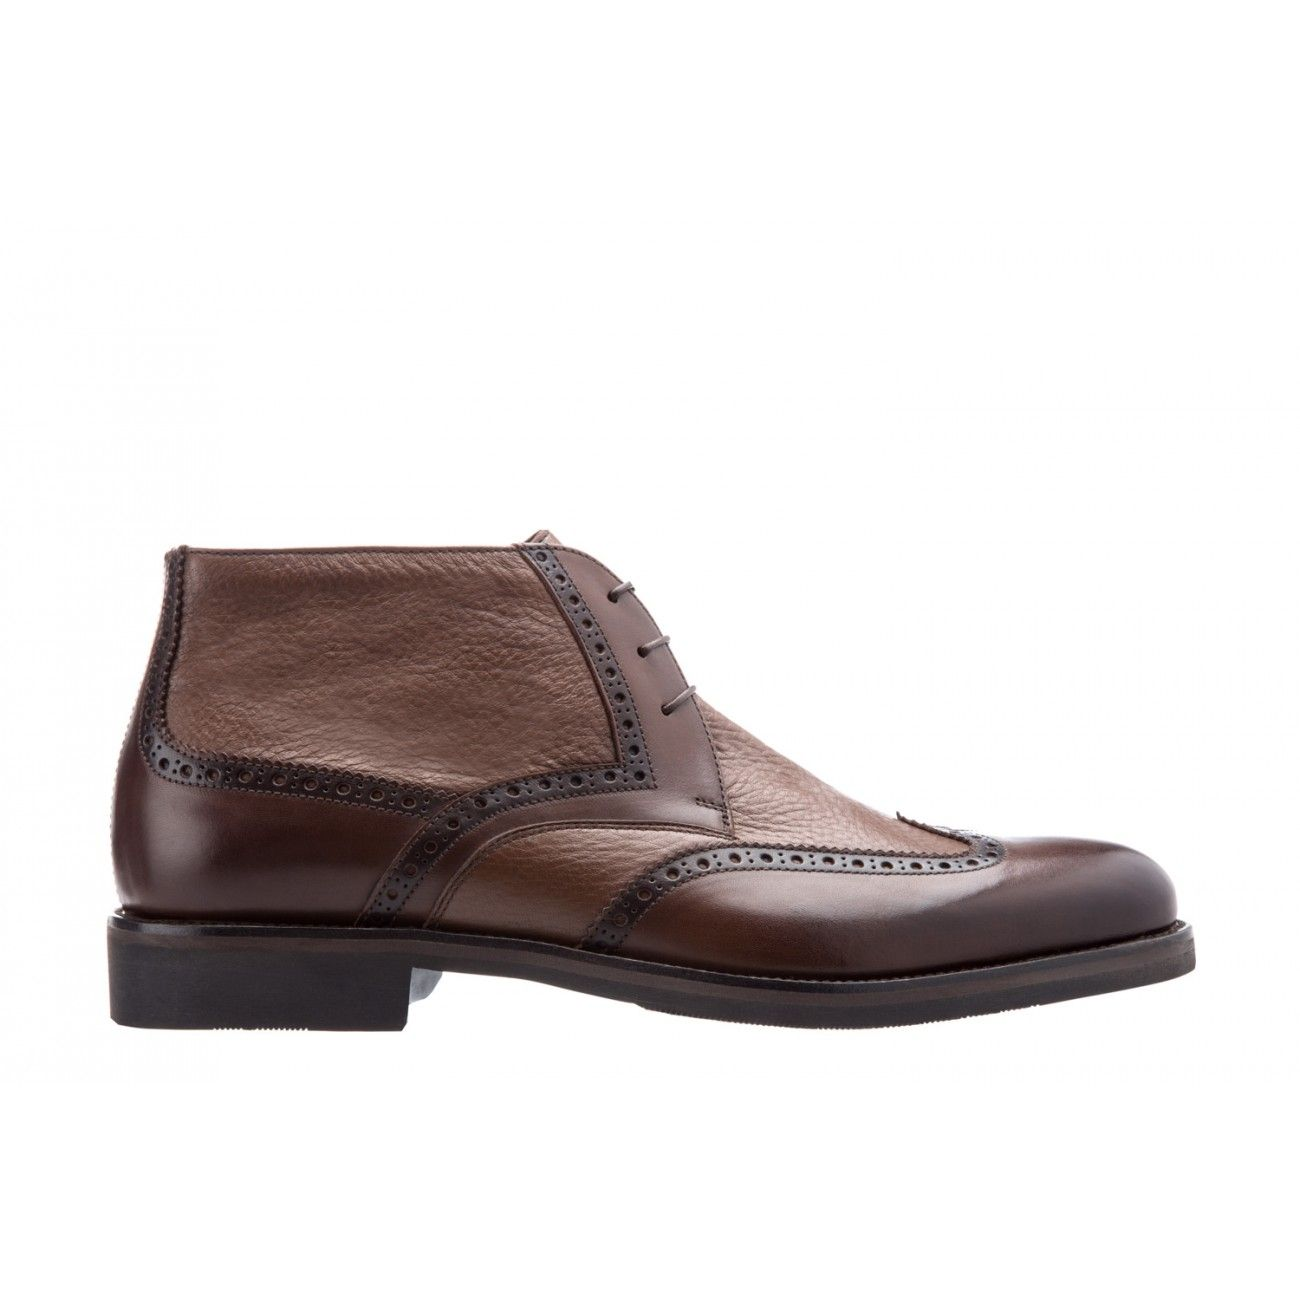 Italian Shoes & Accessories Made in Italy. Find this Pin and more on MEN'S  FOOTWEAR by ghassanjean. Moreschi Deerskin ankle boot